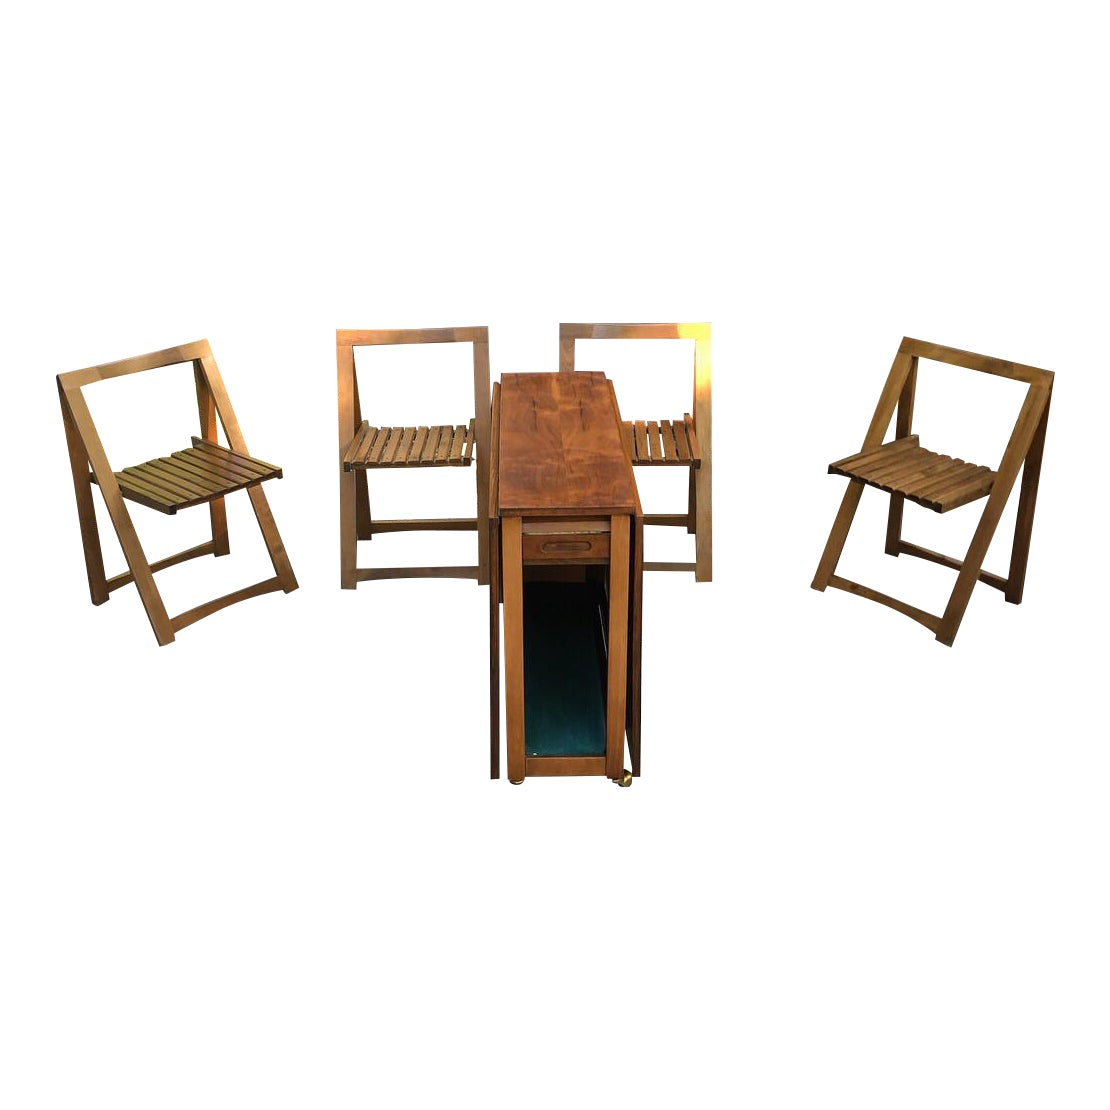 1960s Mid Century Modern Drop Leaf Wood Hideaway Rolling Table And Chairs 5 Piece Set Chairish